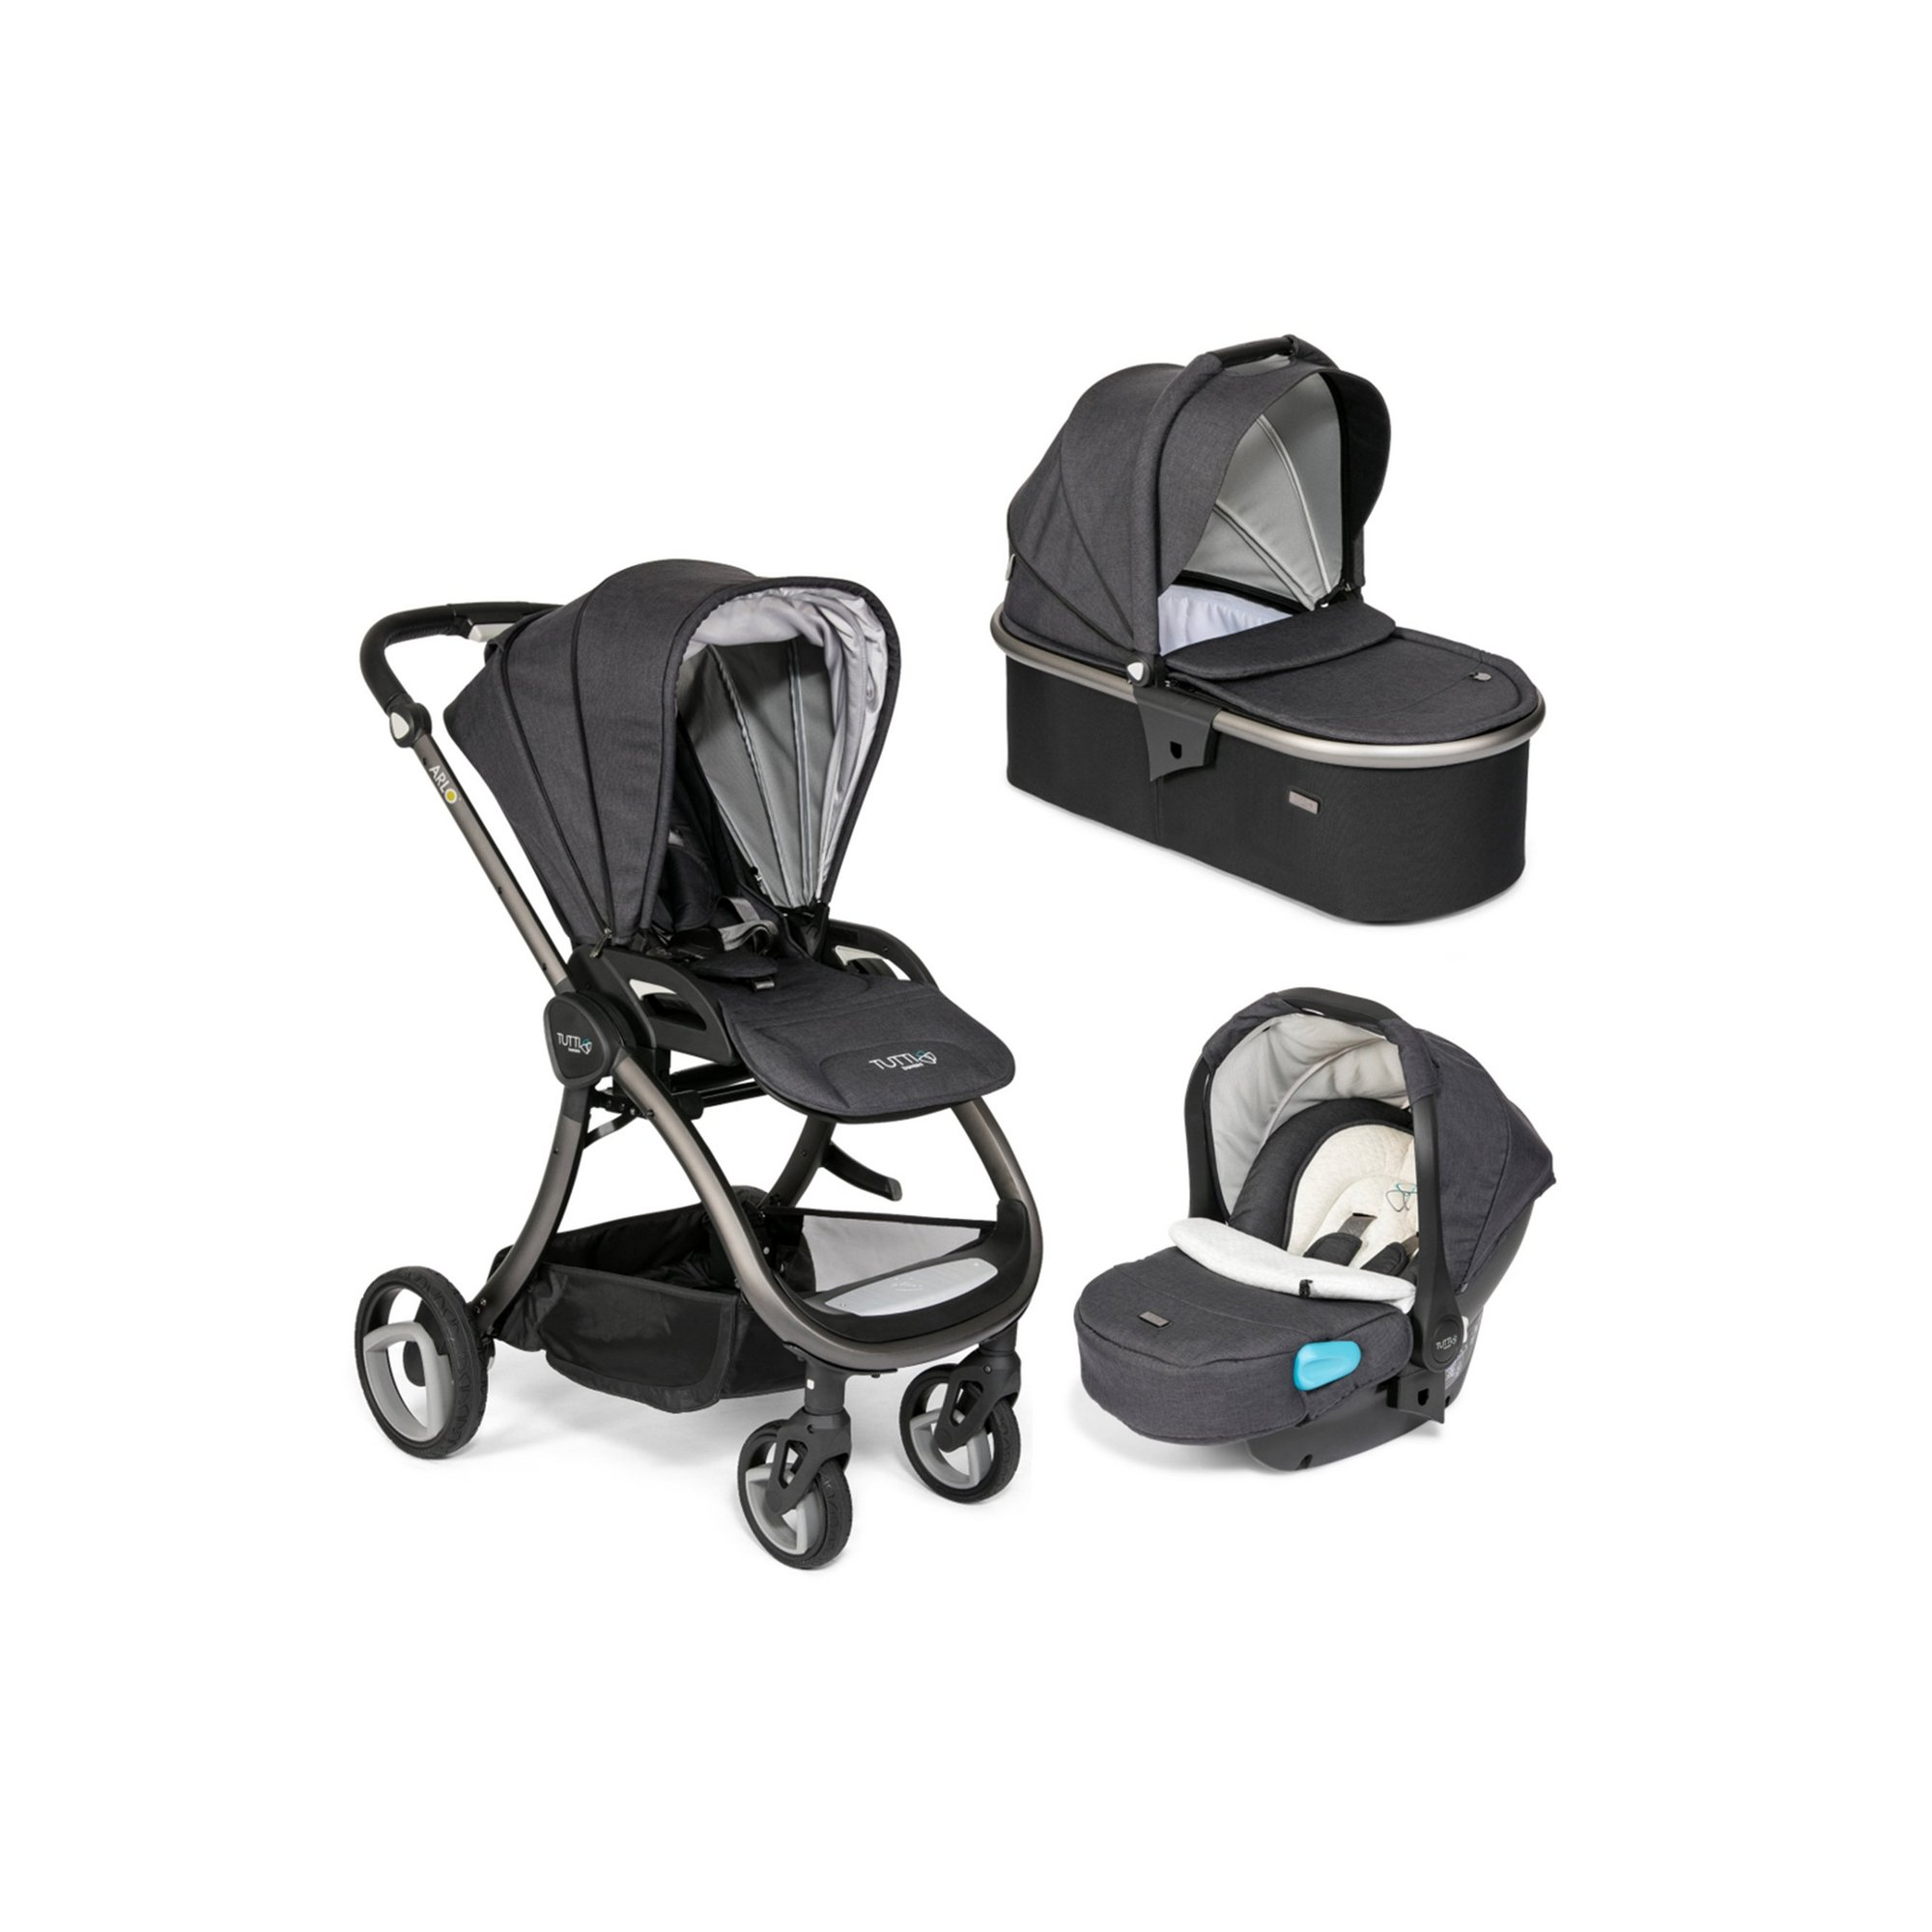 Image of Arlo Charcoal 3 in 1 Travel System